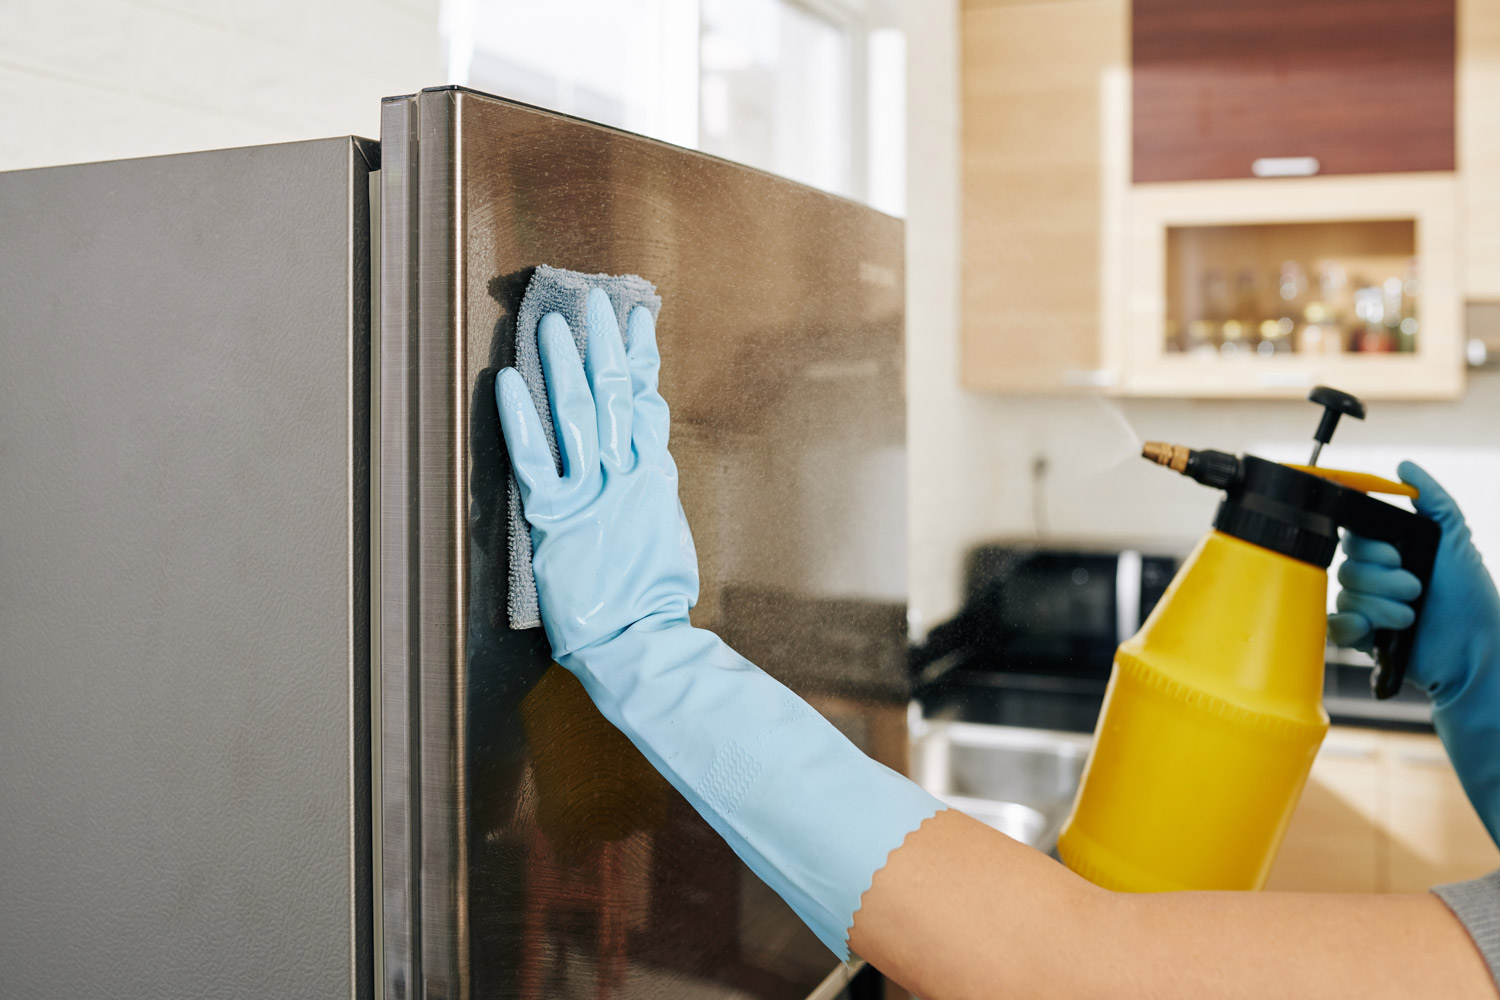 Woman cleaning refrigerator after hurricane damage.